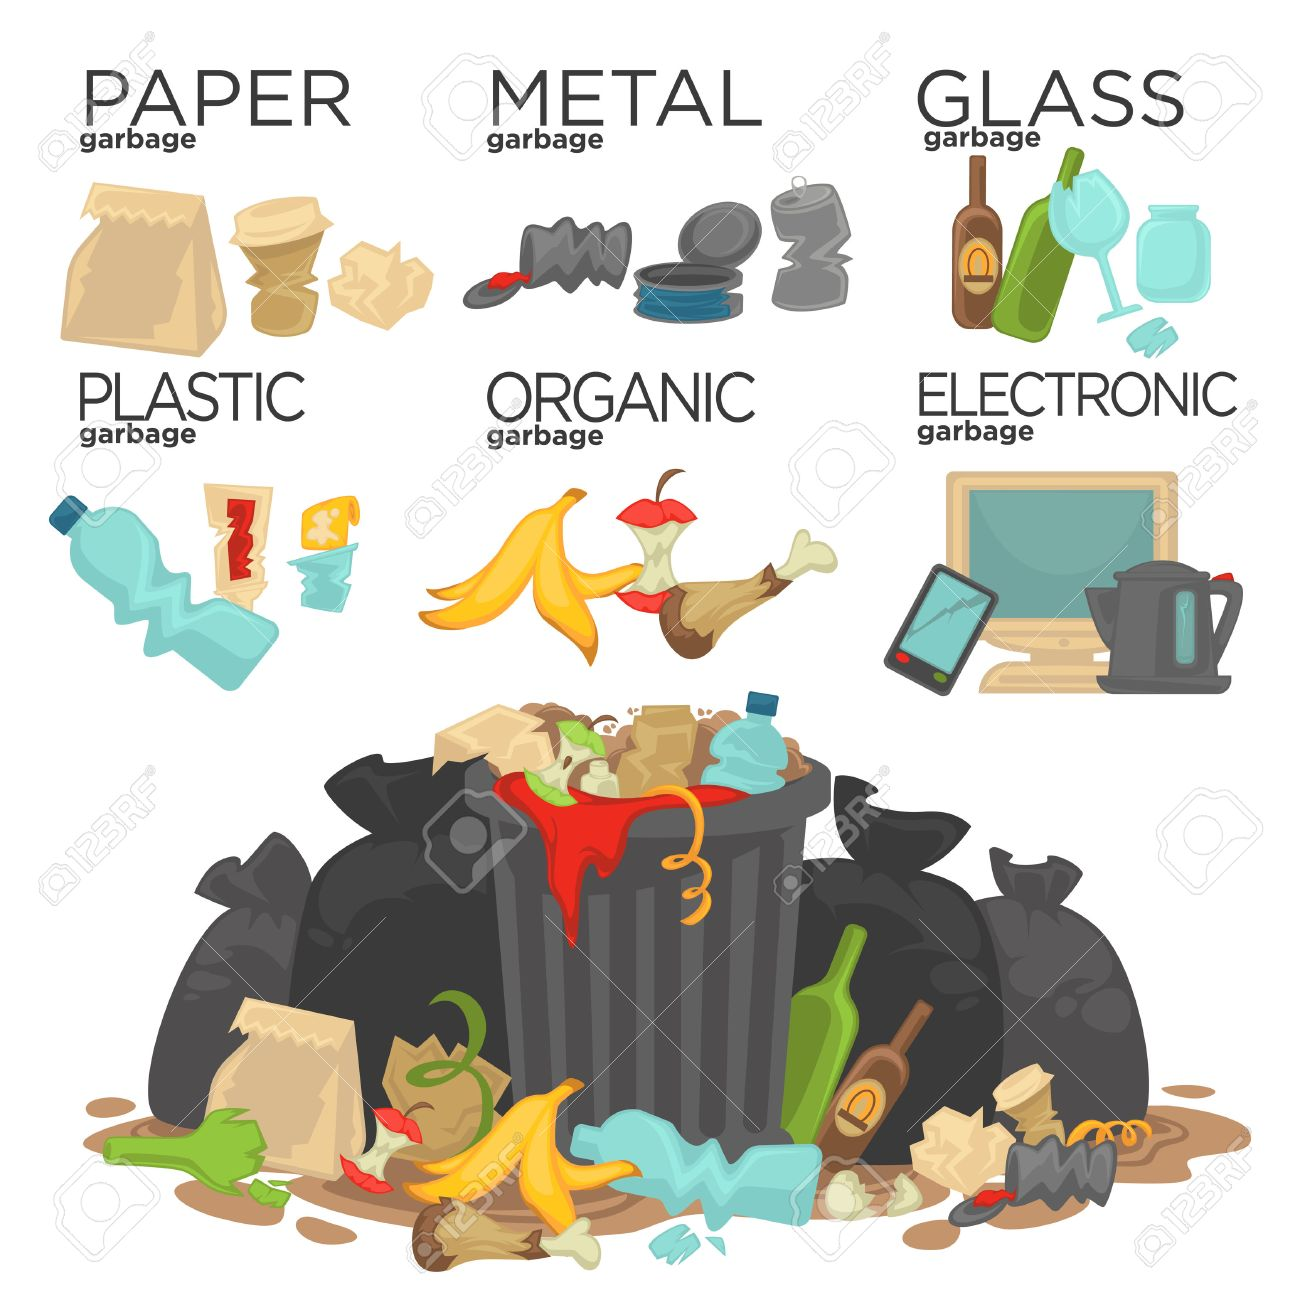 Garbage sorting food waste, glass, metal and paper, plastic electronic, organic. Pile of Smelling Decaying Garbage Left Lying Around. Vector Illustration. - 67681121